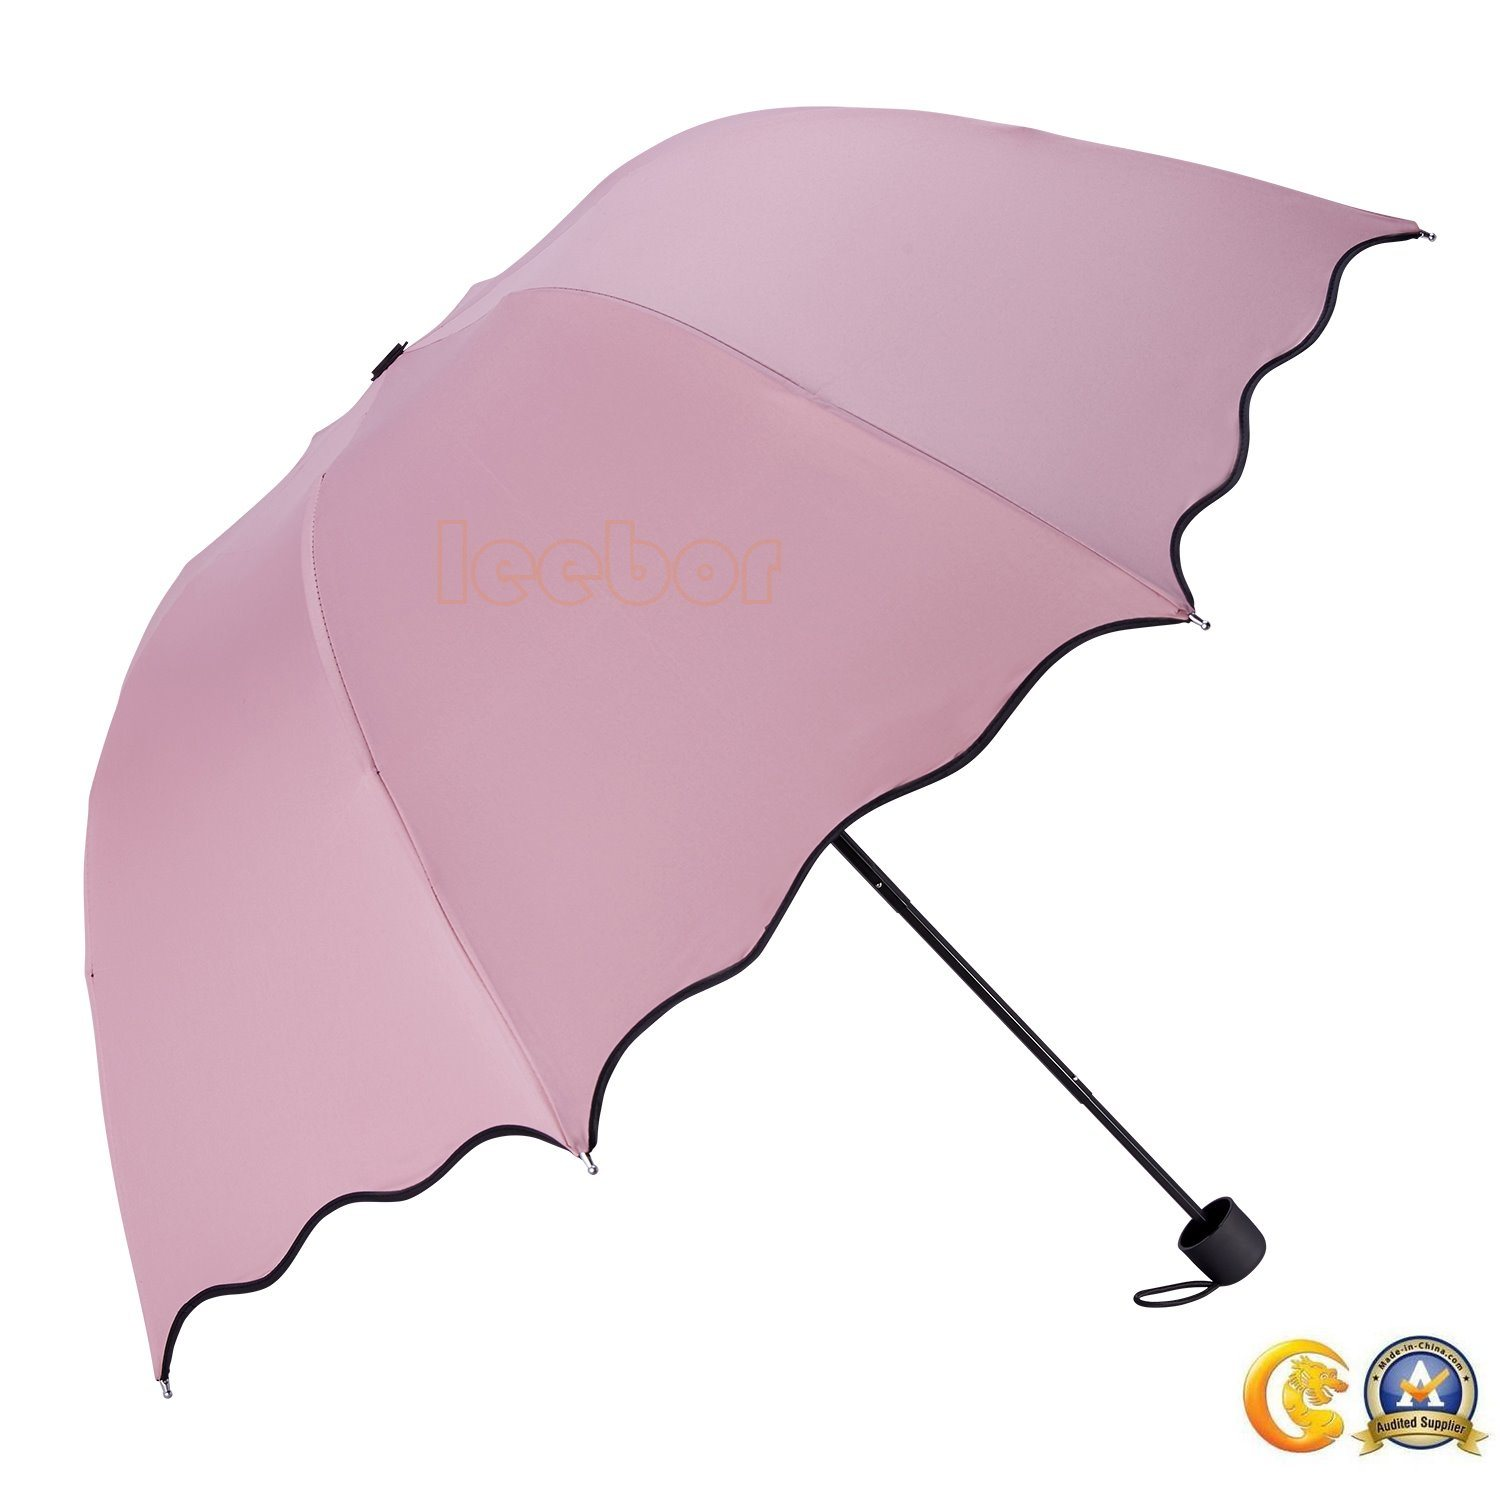 965b048be0a1c China Hand Held Best Sun Arch 3 Folding Umbrella for Ladies - China Umbrella,  3 Folding Umbrella